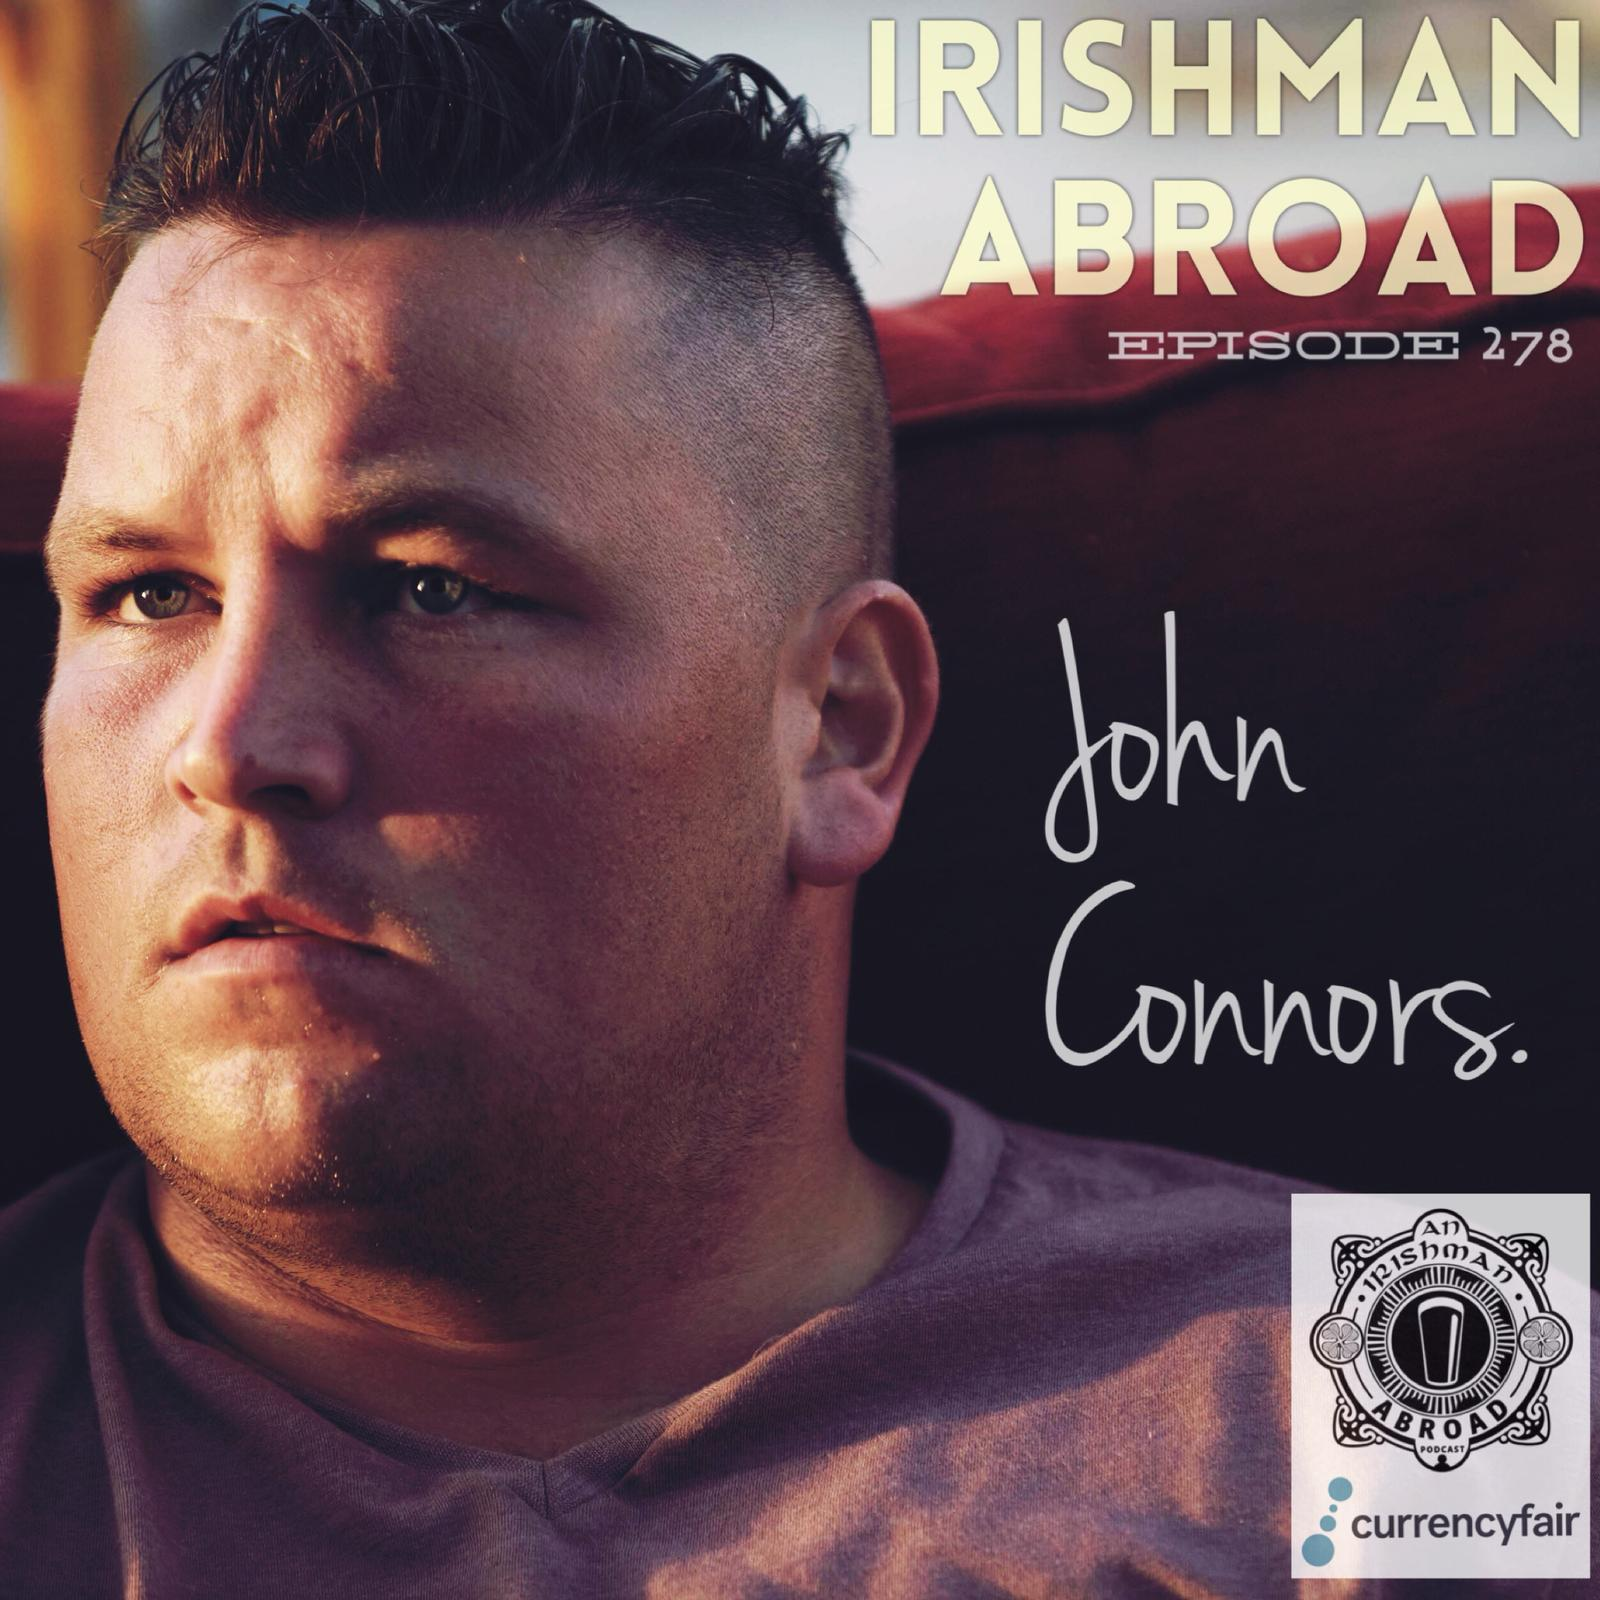 John Connors: Episode 278